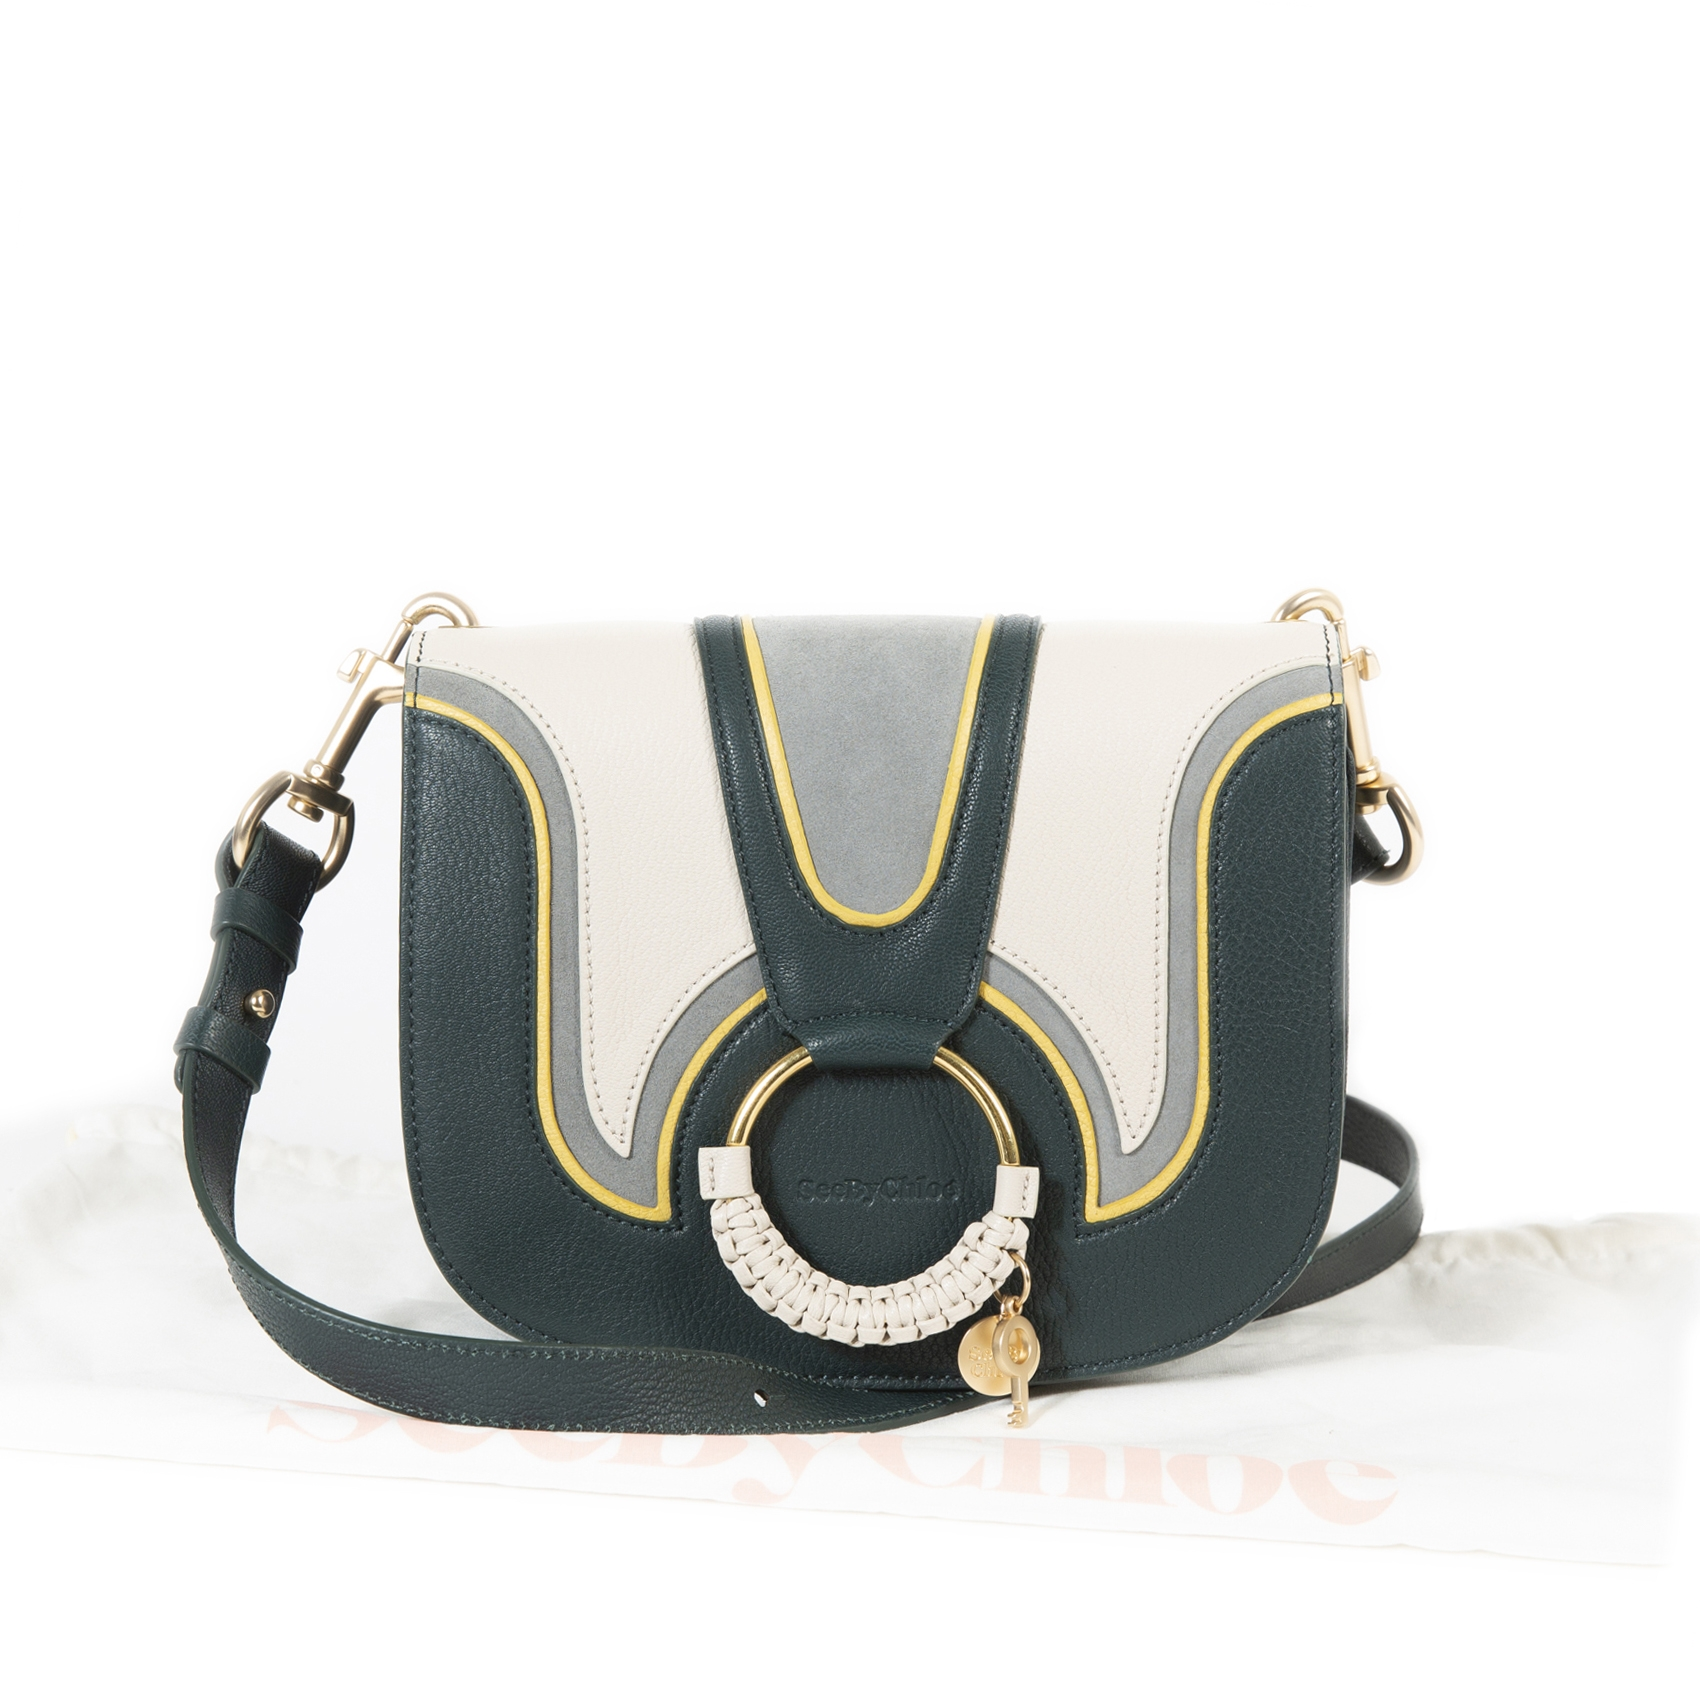 9b256dde4a1d ... see by chloe green hana medium corssbody bag now for sale at labellov